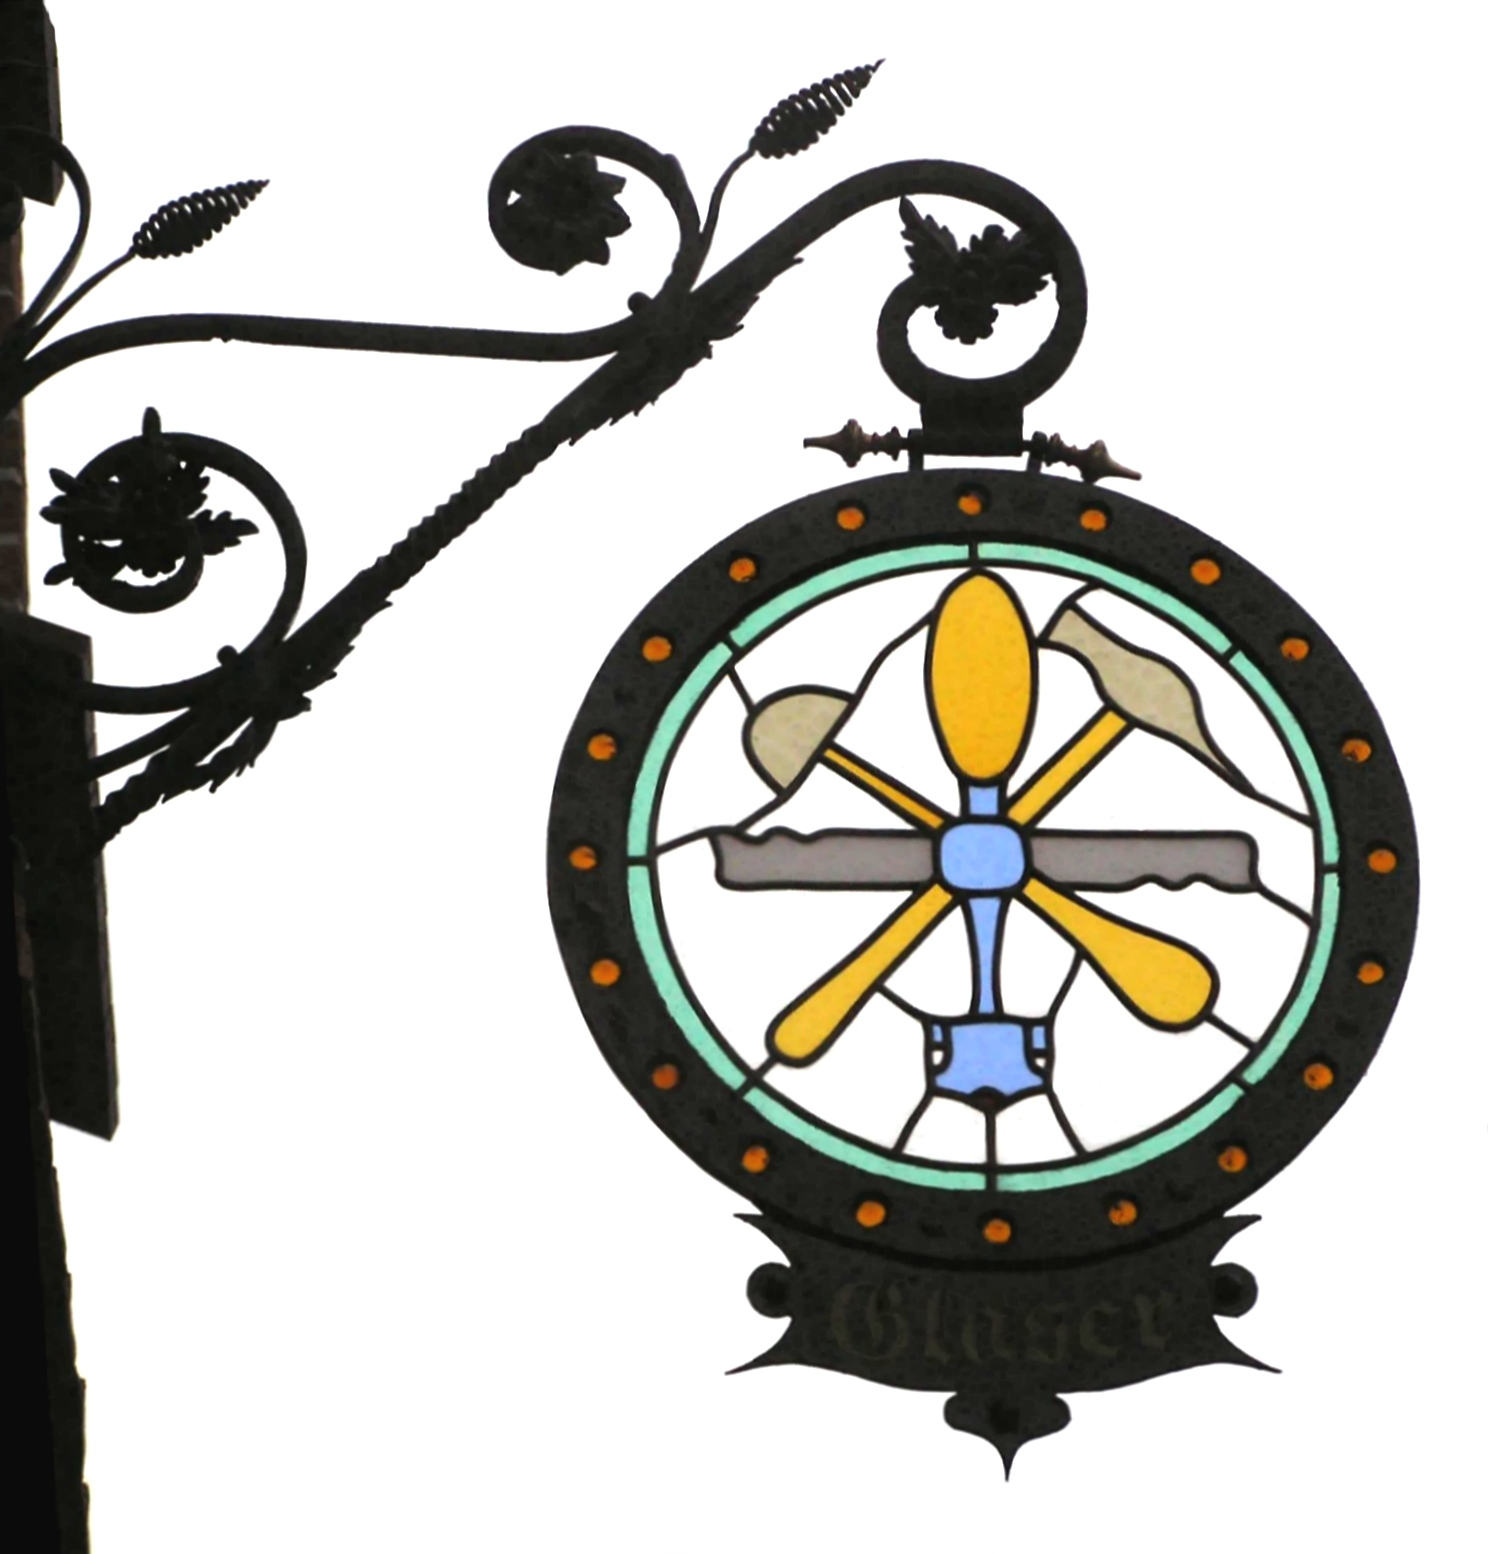 Medieval Guild Signs wrought-iron guild sign of